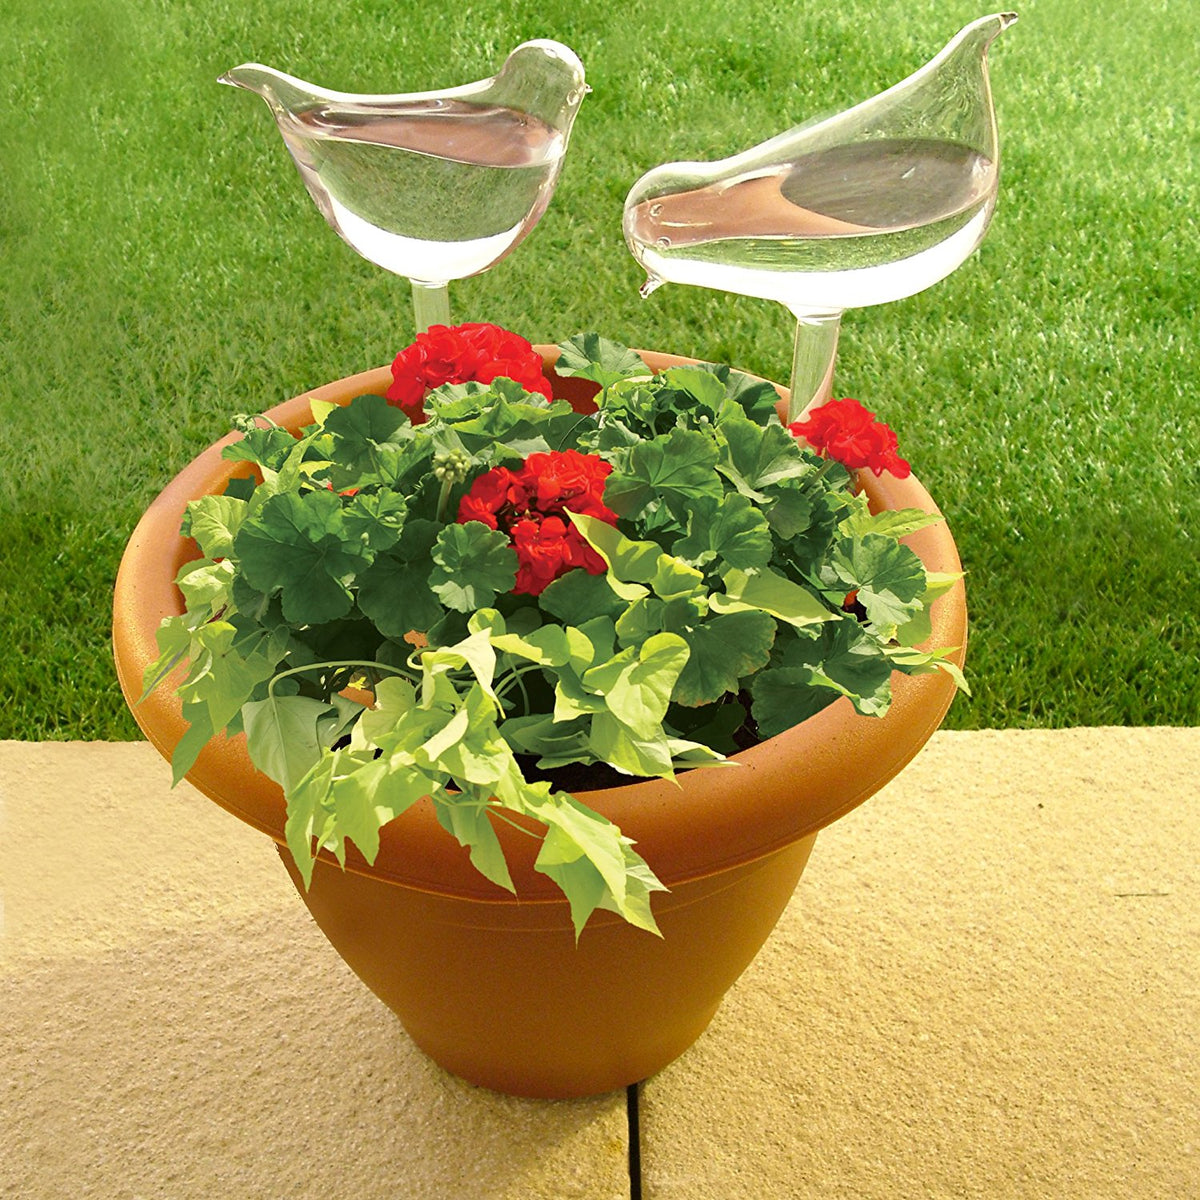 Set of 2 Handmade Glass Bird Waterer For Keeping Your Potted Plants and Flowers Watered